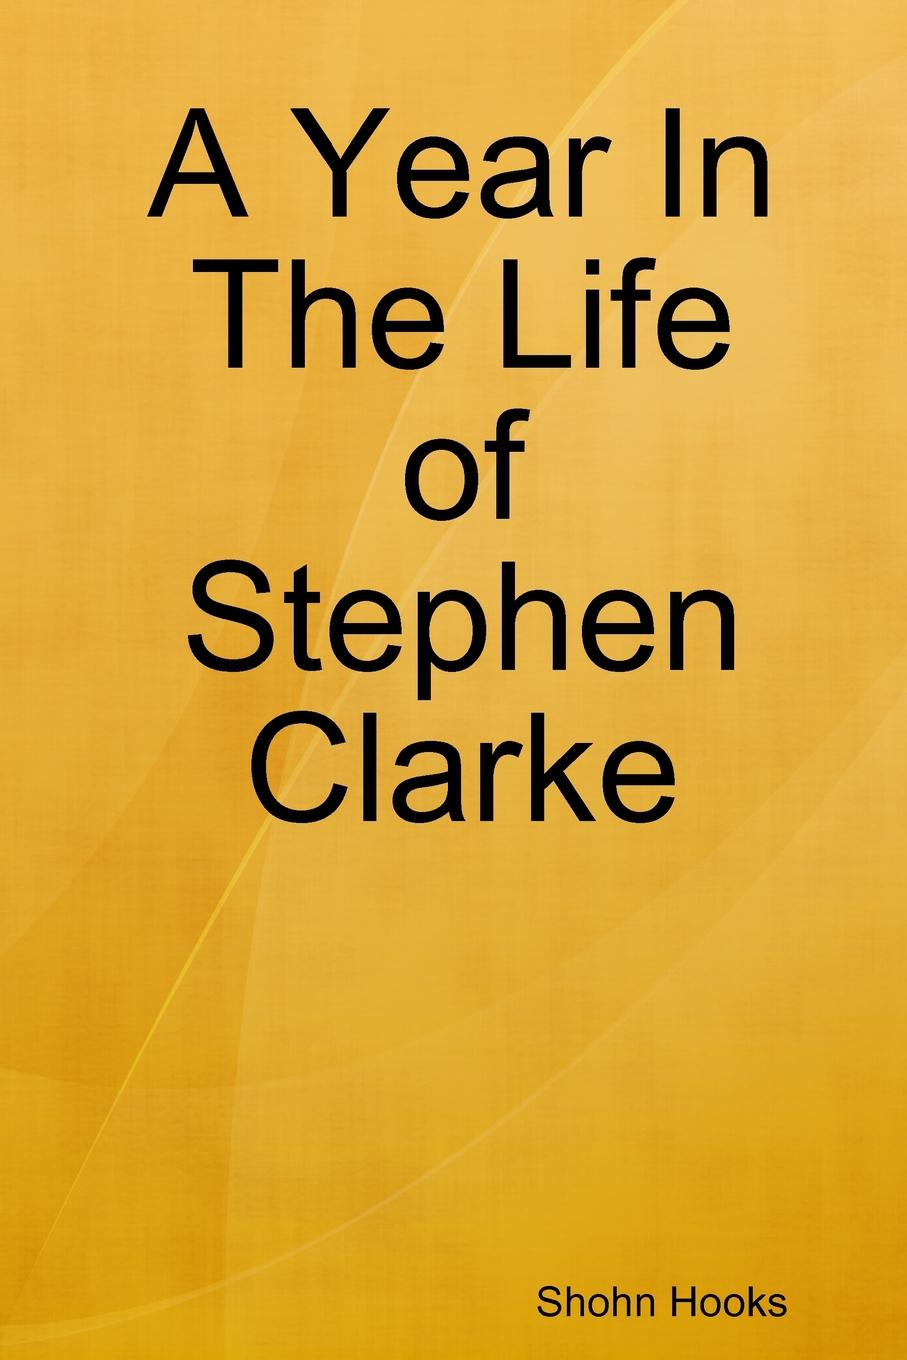 лучшая цена Shohn Hooks A Year In The Life of Stephen Clarke